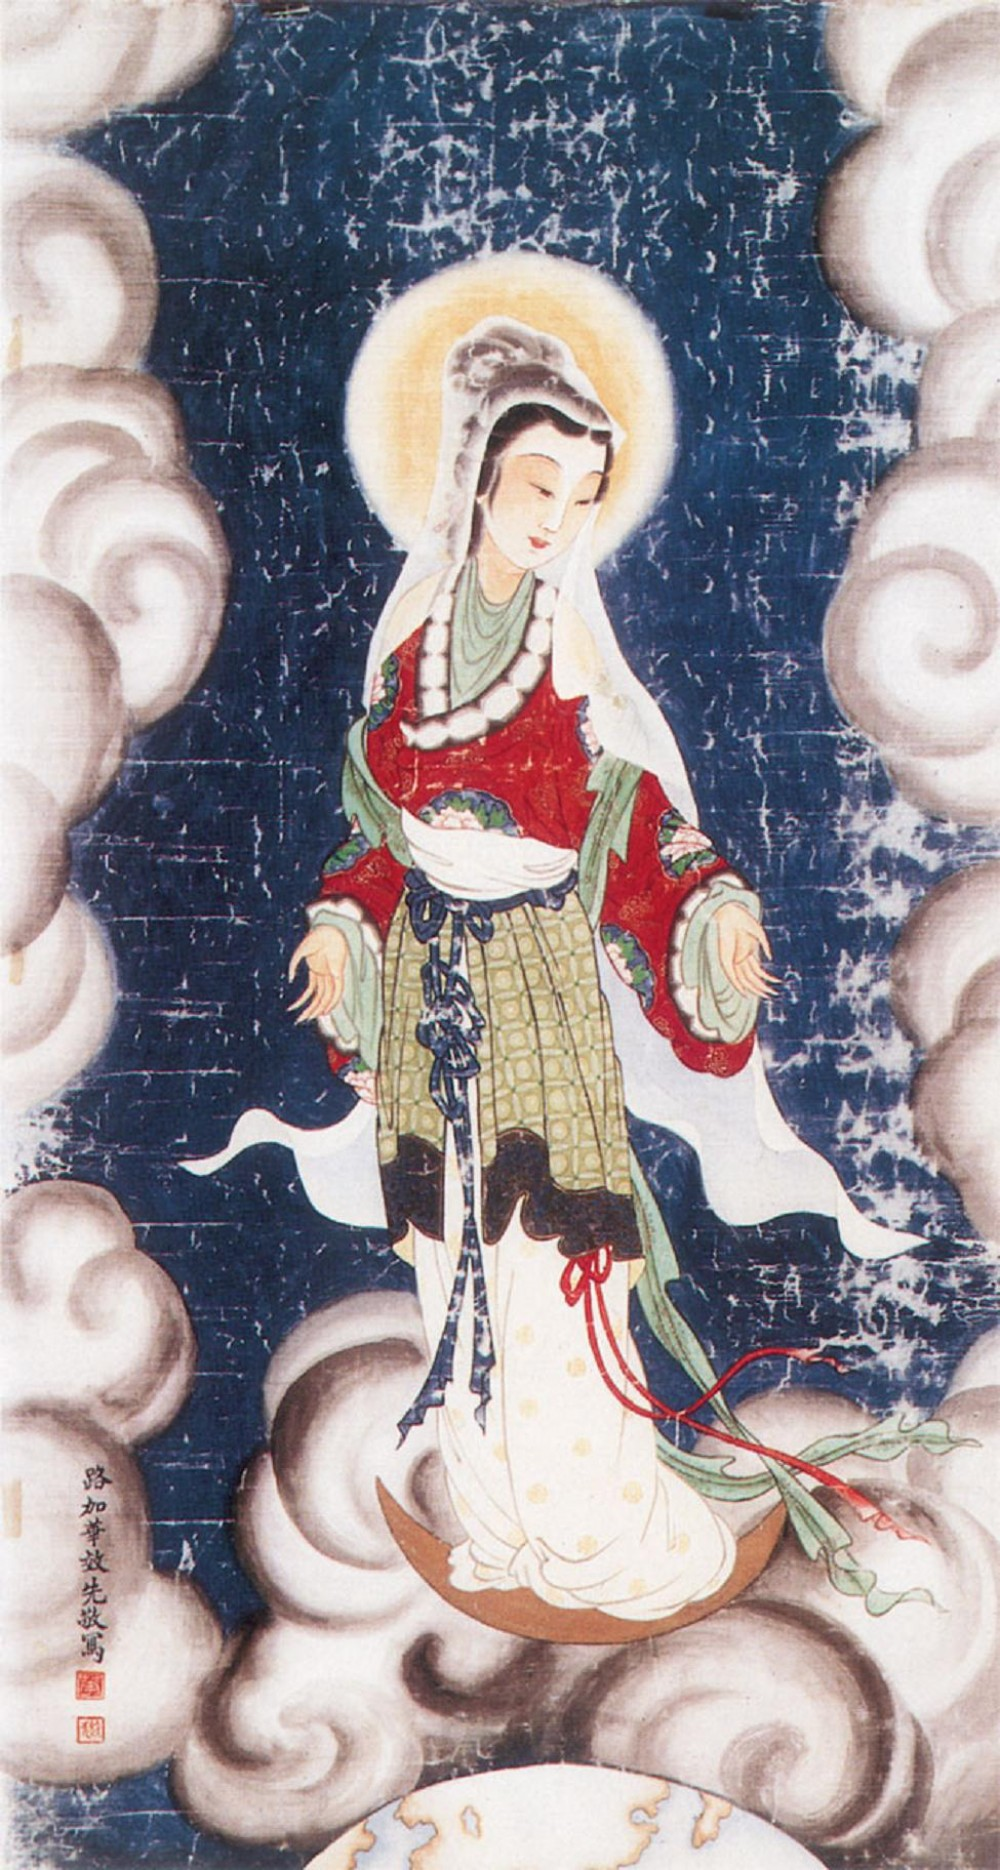 chinese-christian-painting-08-e1279086530682.jpg